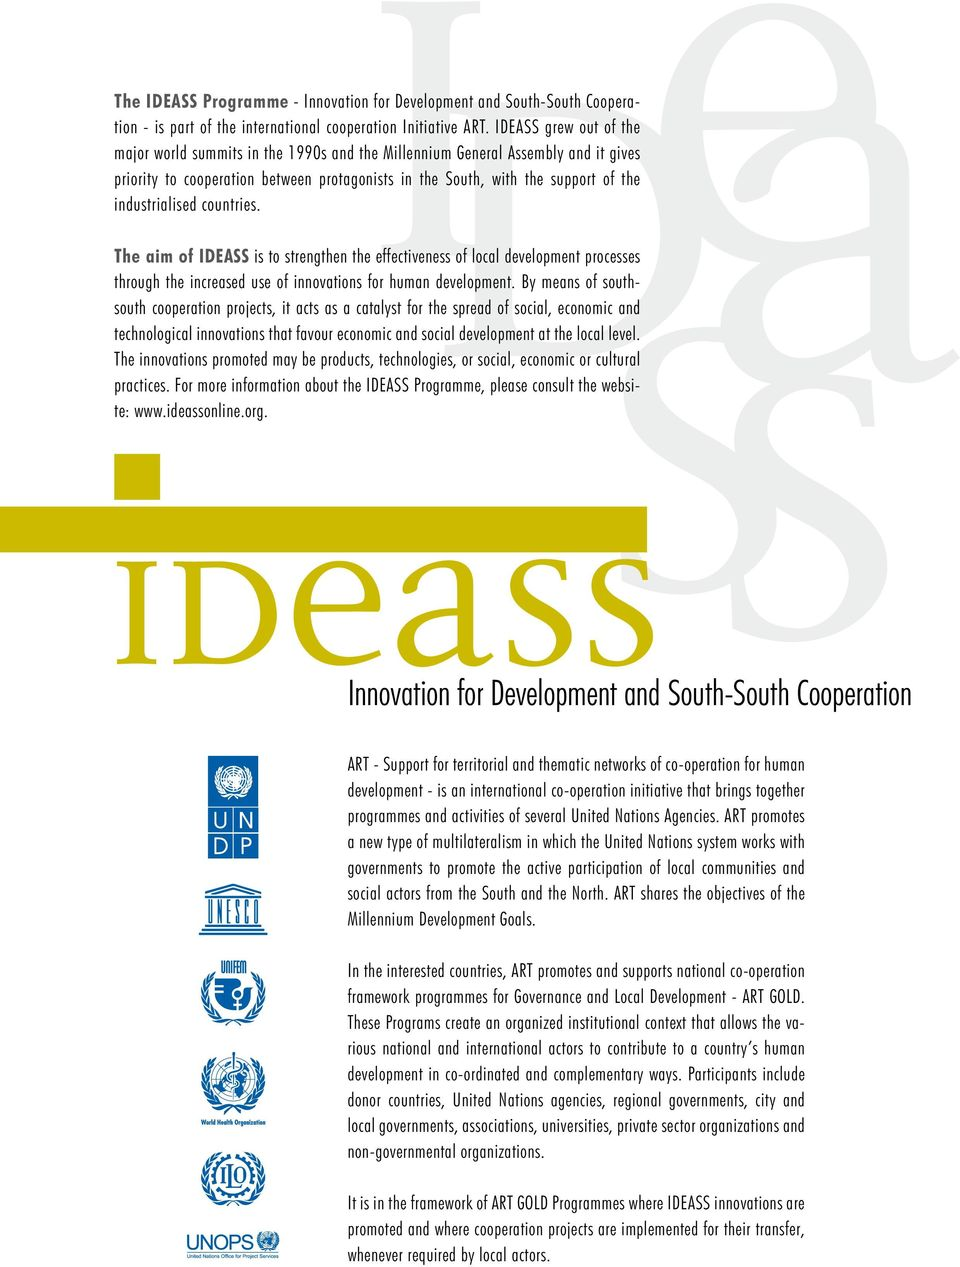 industrialised countries. The aim of IDEASS is to strengthen the effectiveness of local development processes through the increased use of innovations for human development.